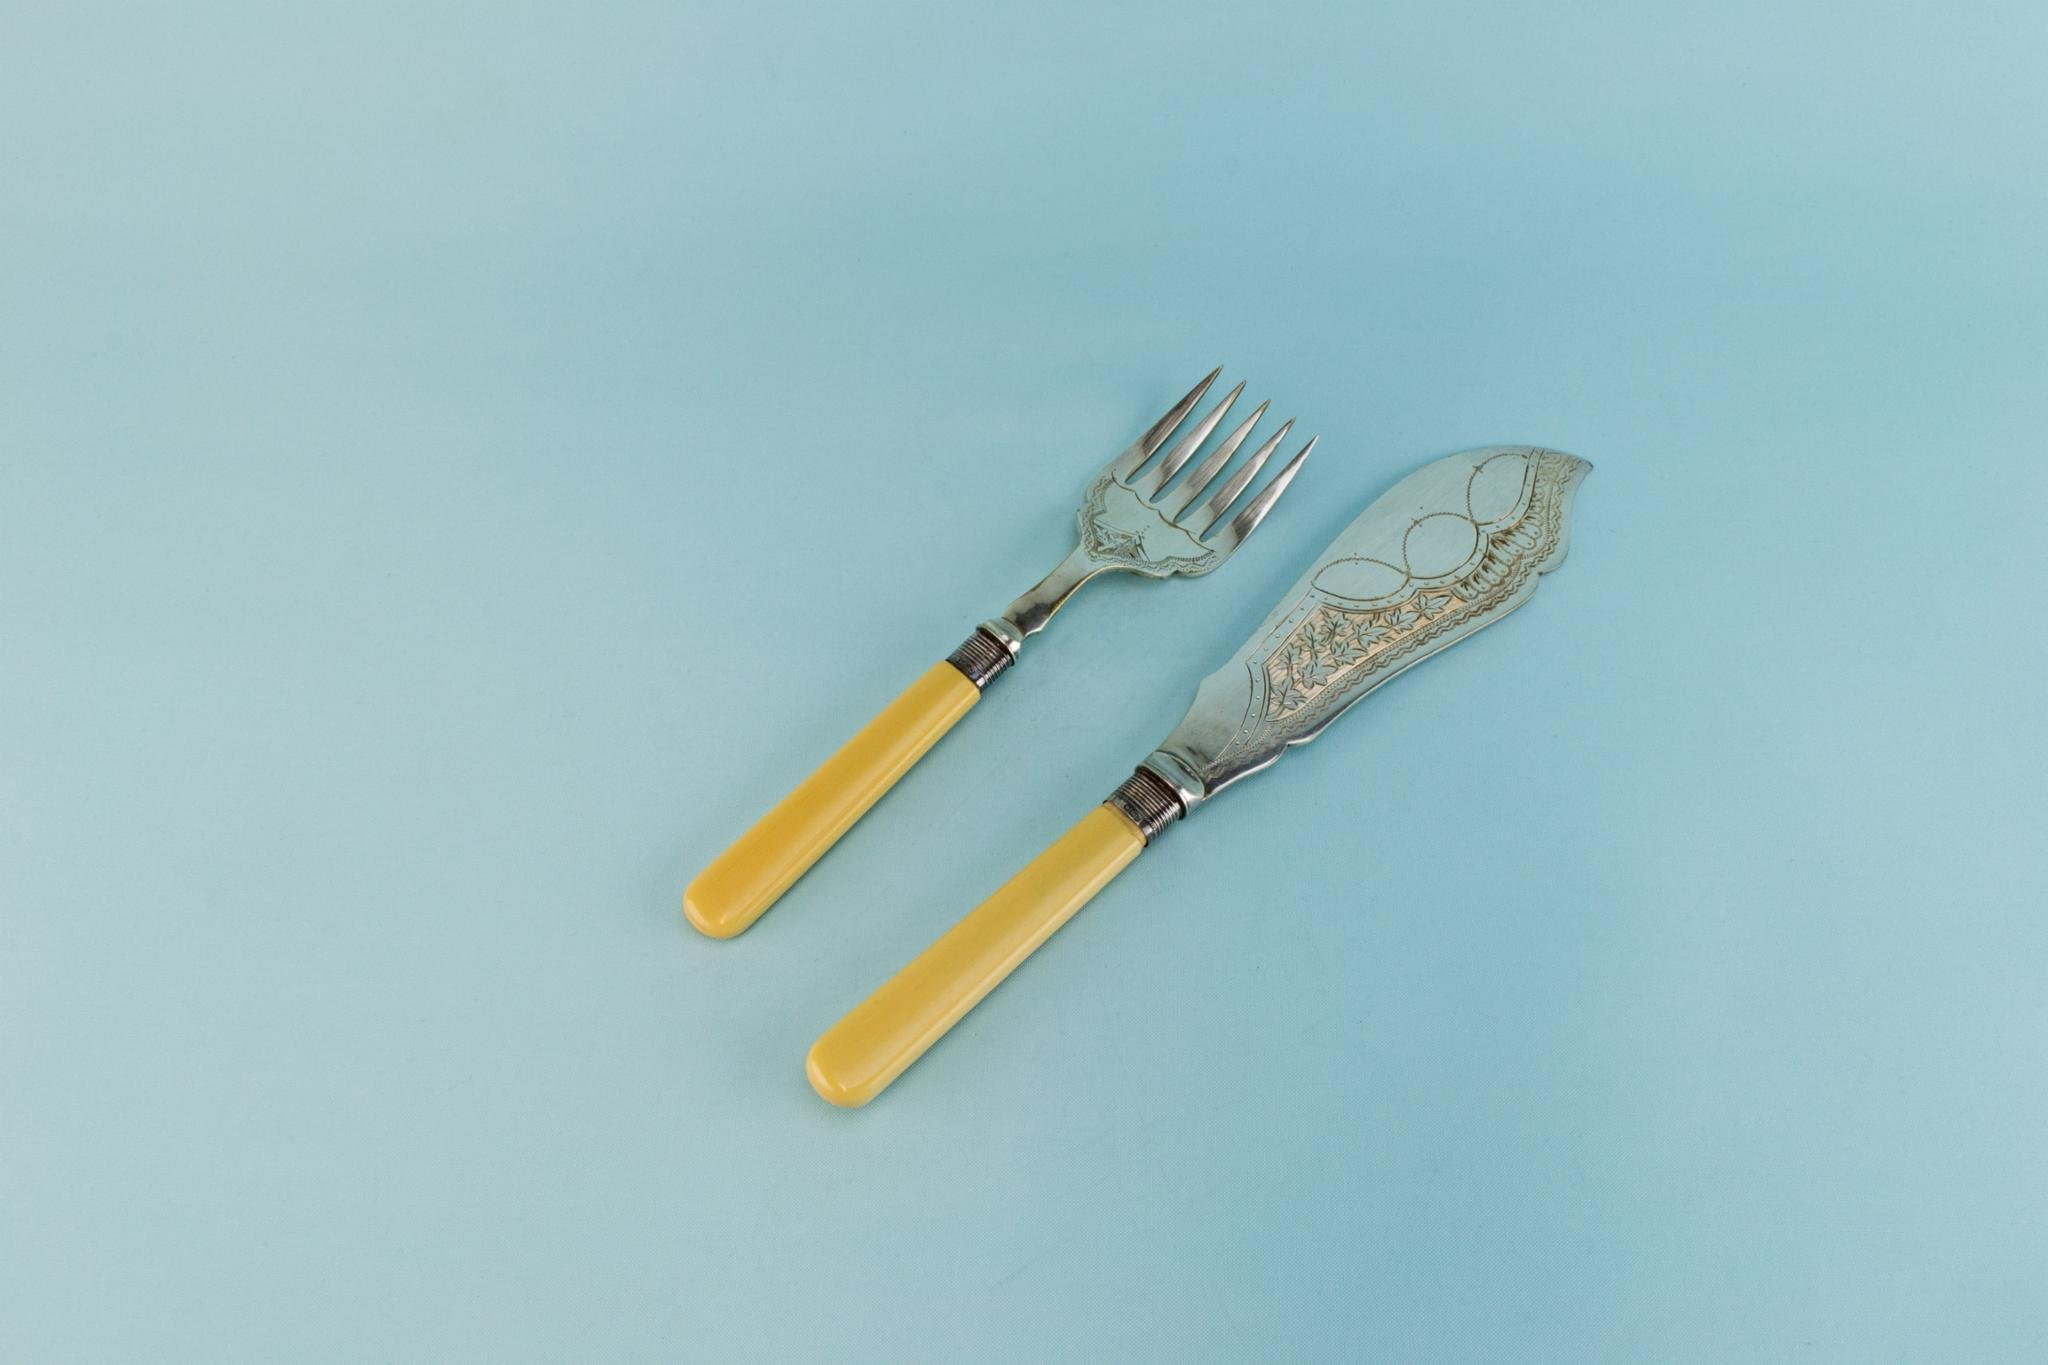 1892 Serving Large Knife Spoon Set Silver Plated Sterling Collar Antique English Victorian